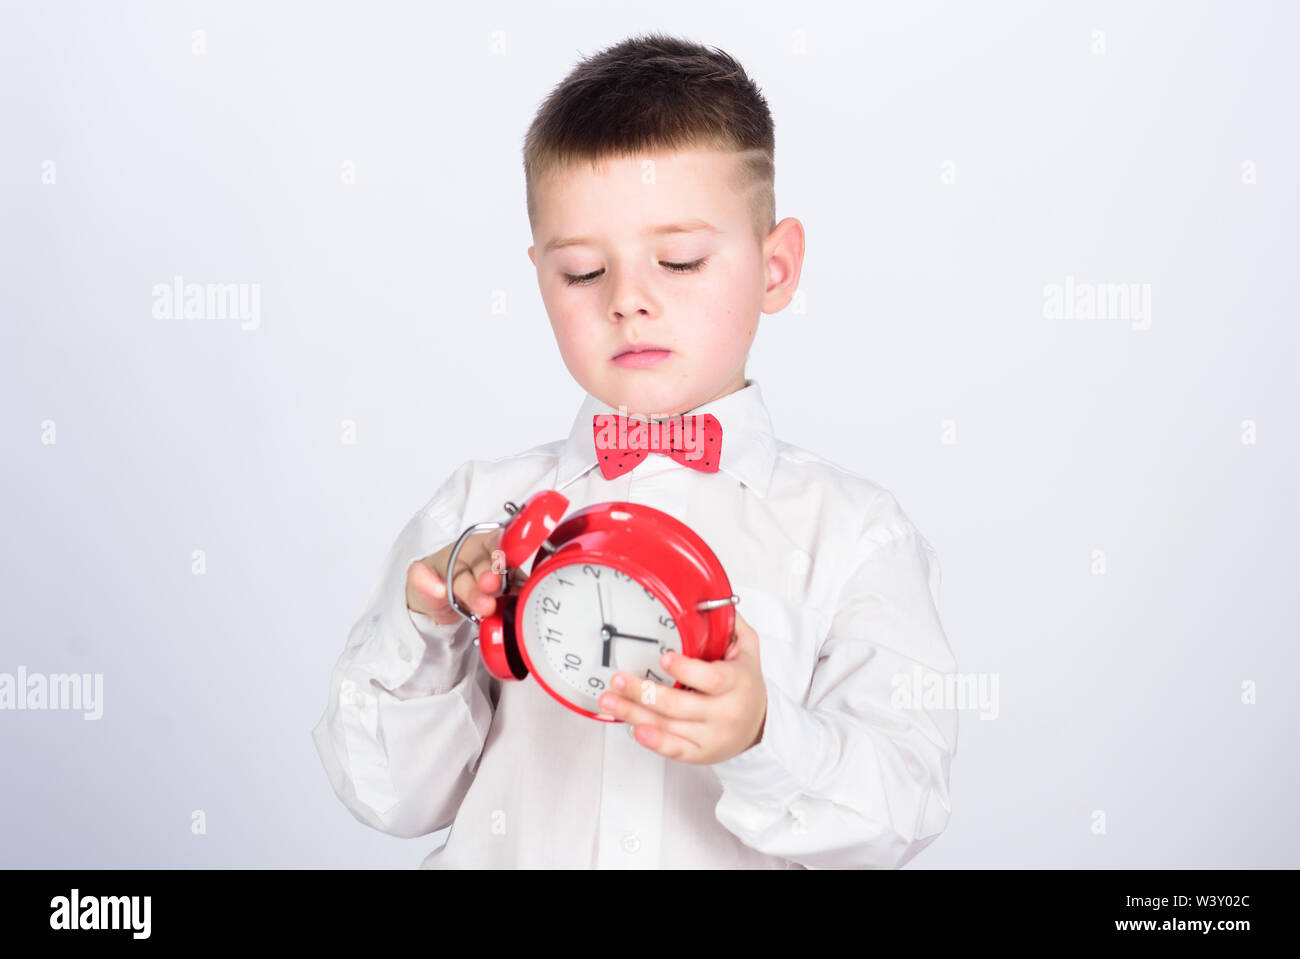 happy child with retro clock in bow tie. tuxedo kid. Happy childhood. little boy with alarm clock. Time to relax. Party time. Businessman. Formal wear. Time management. Morning. tuxedo time. - Stock Image